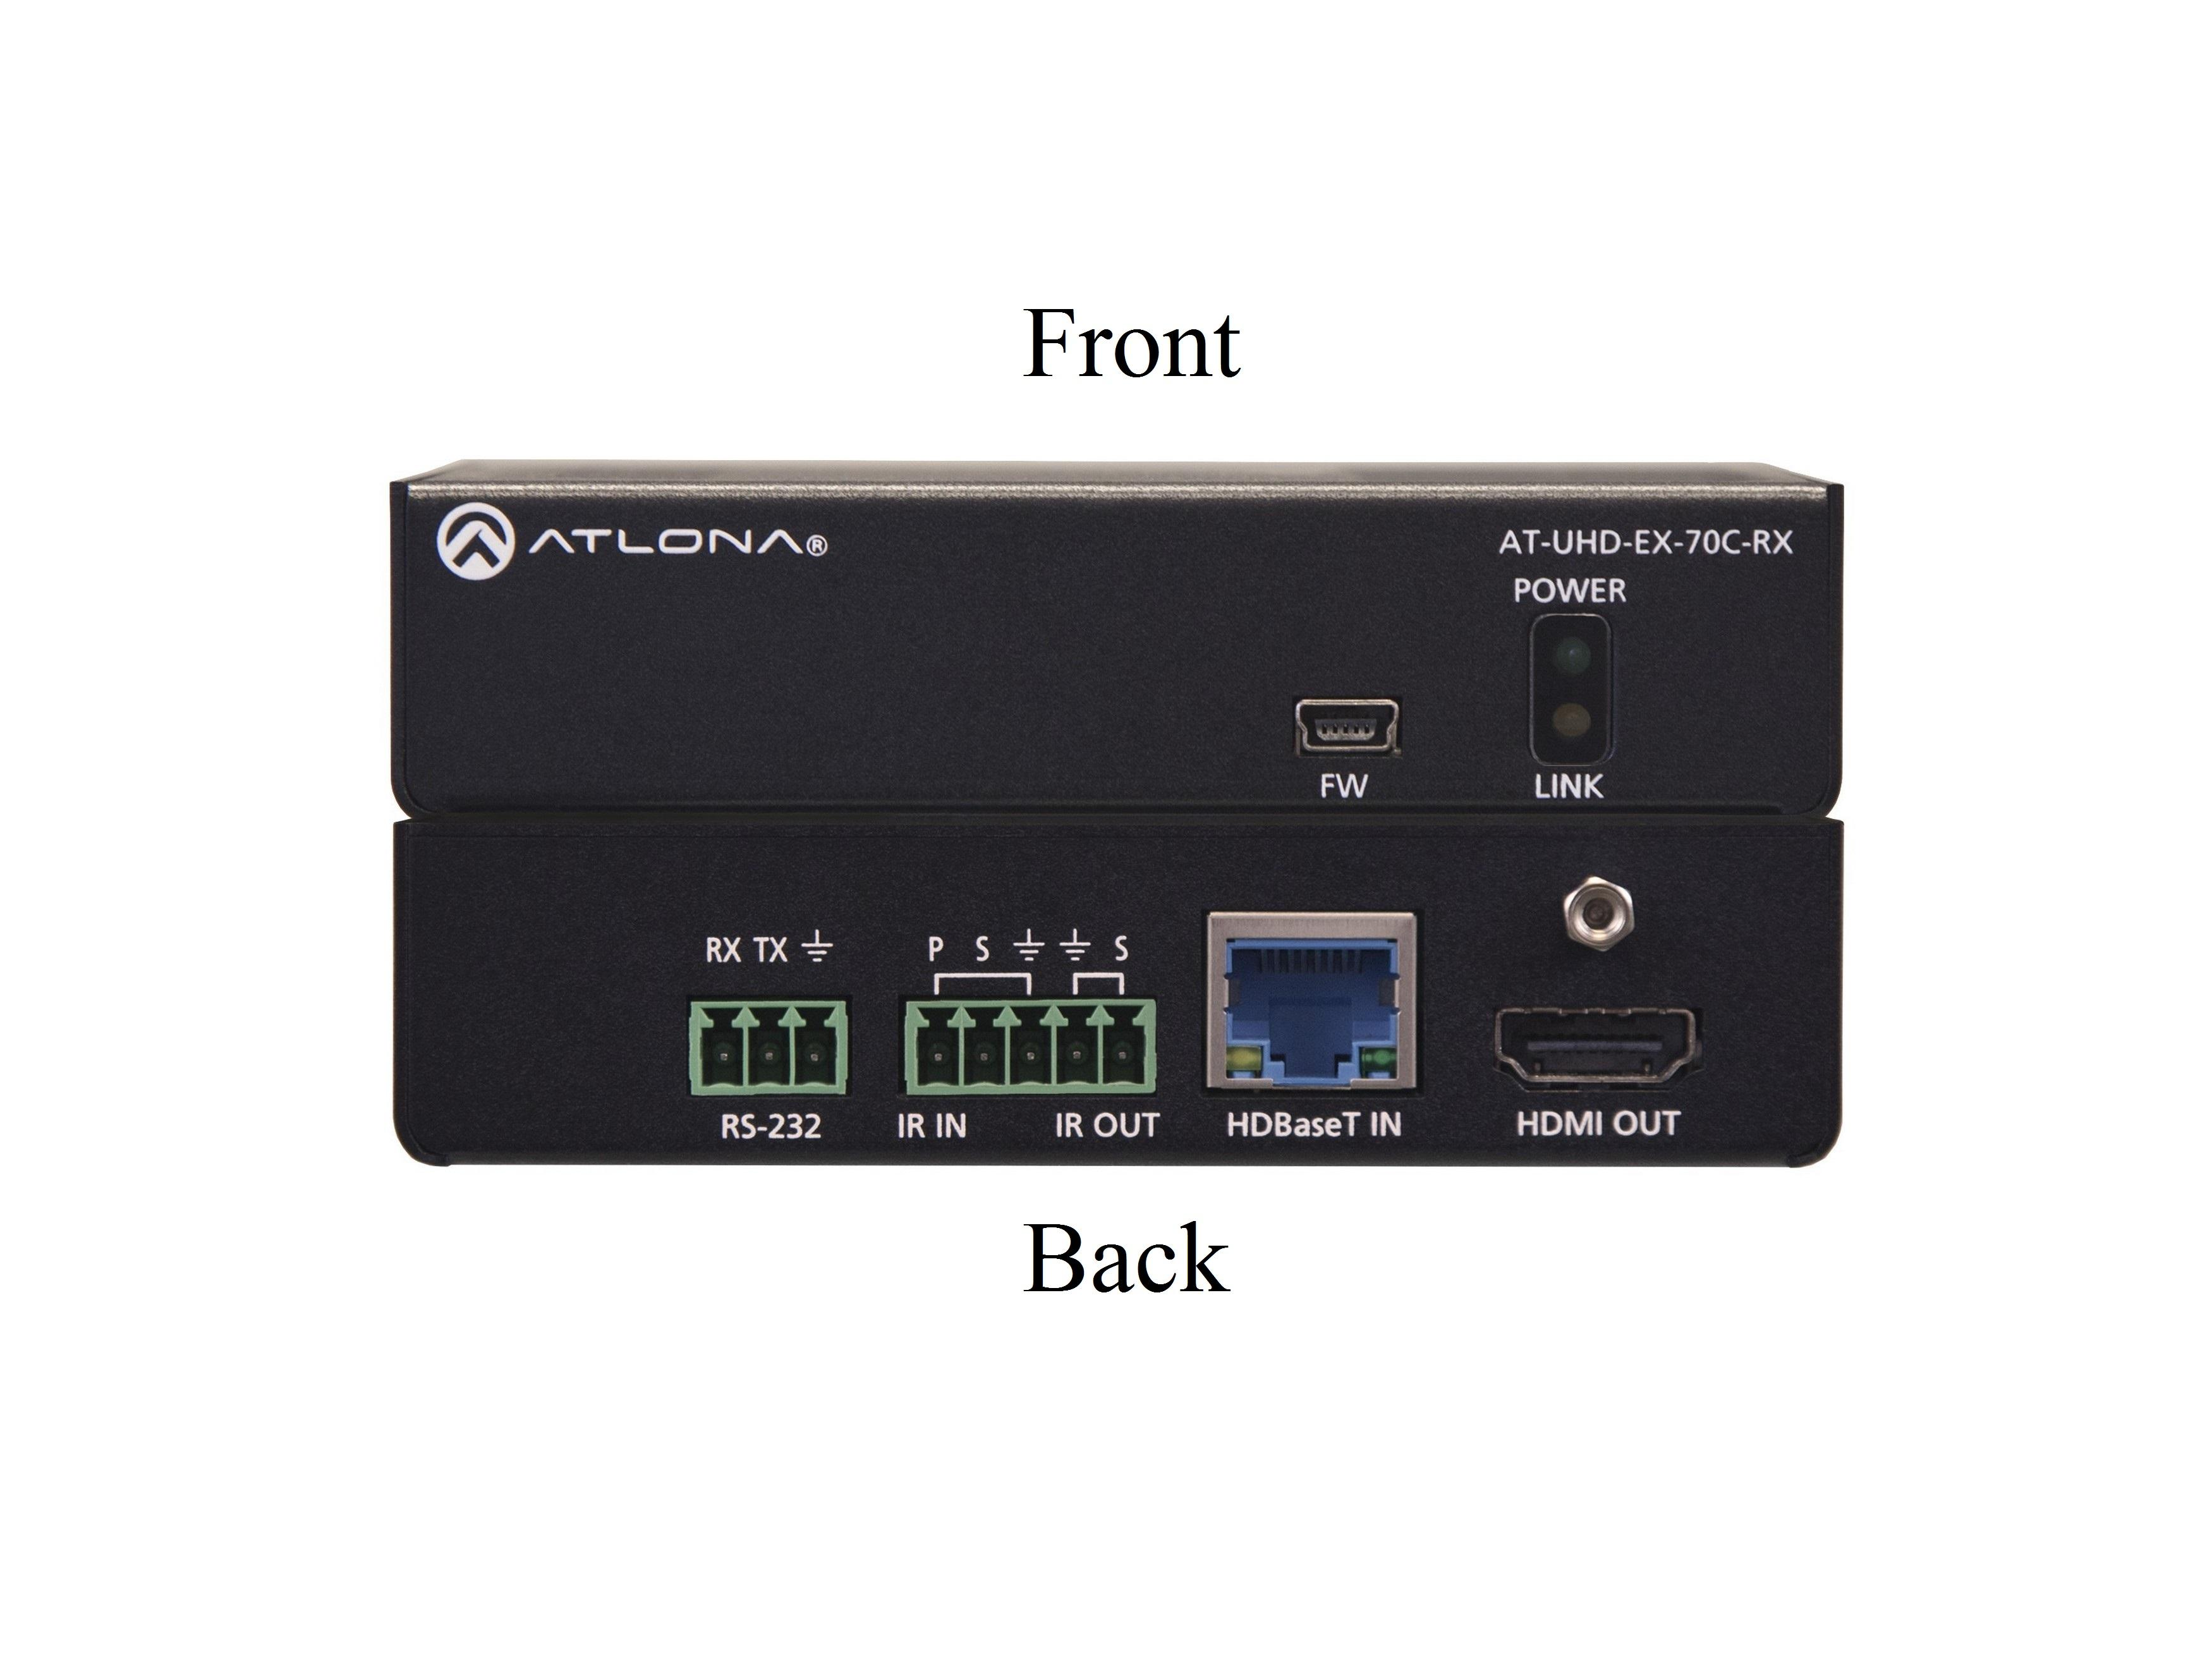 AT-UHD-EX-70C-RX 4K/UHD HDMI Over HDBaseT Receiver with Control and PoE by Atlona